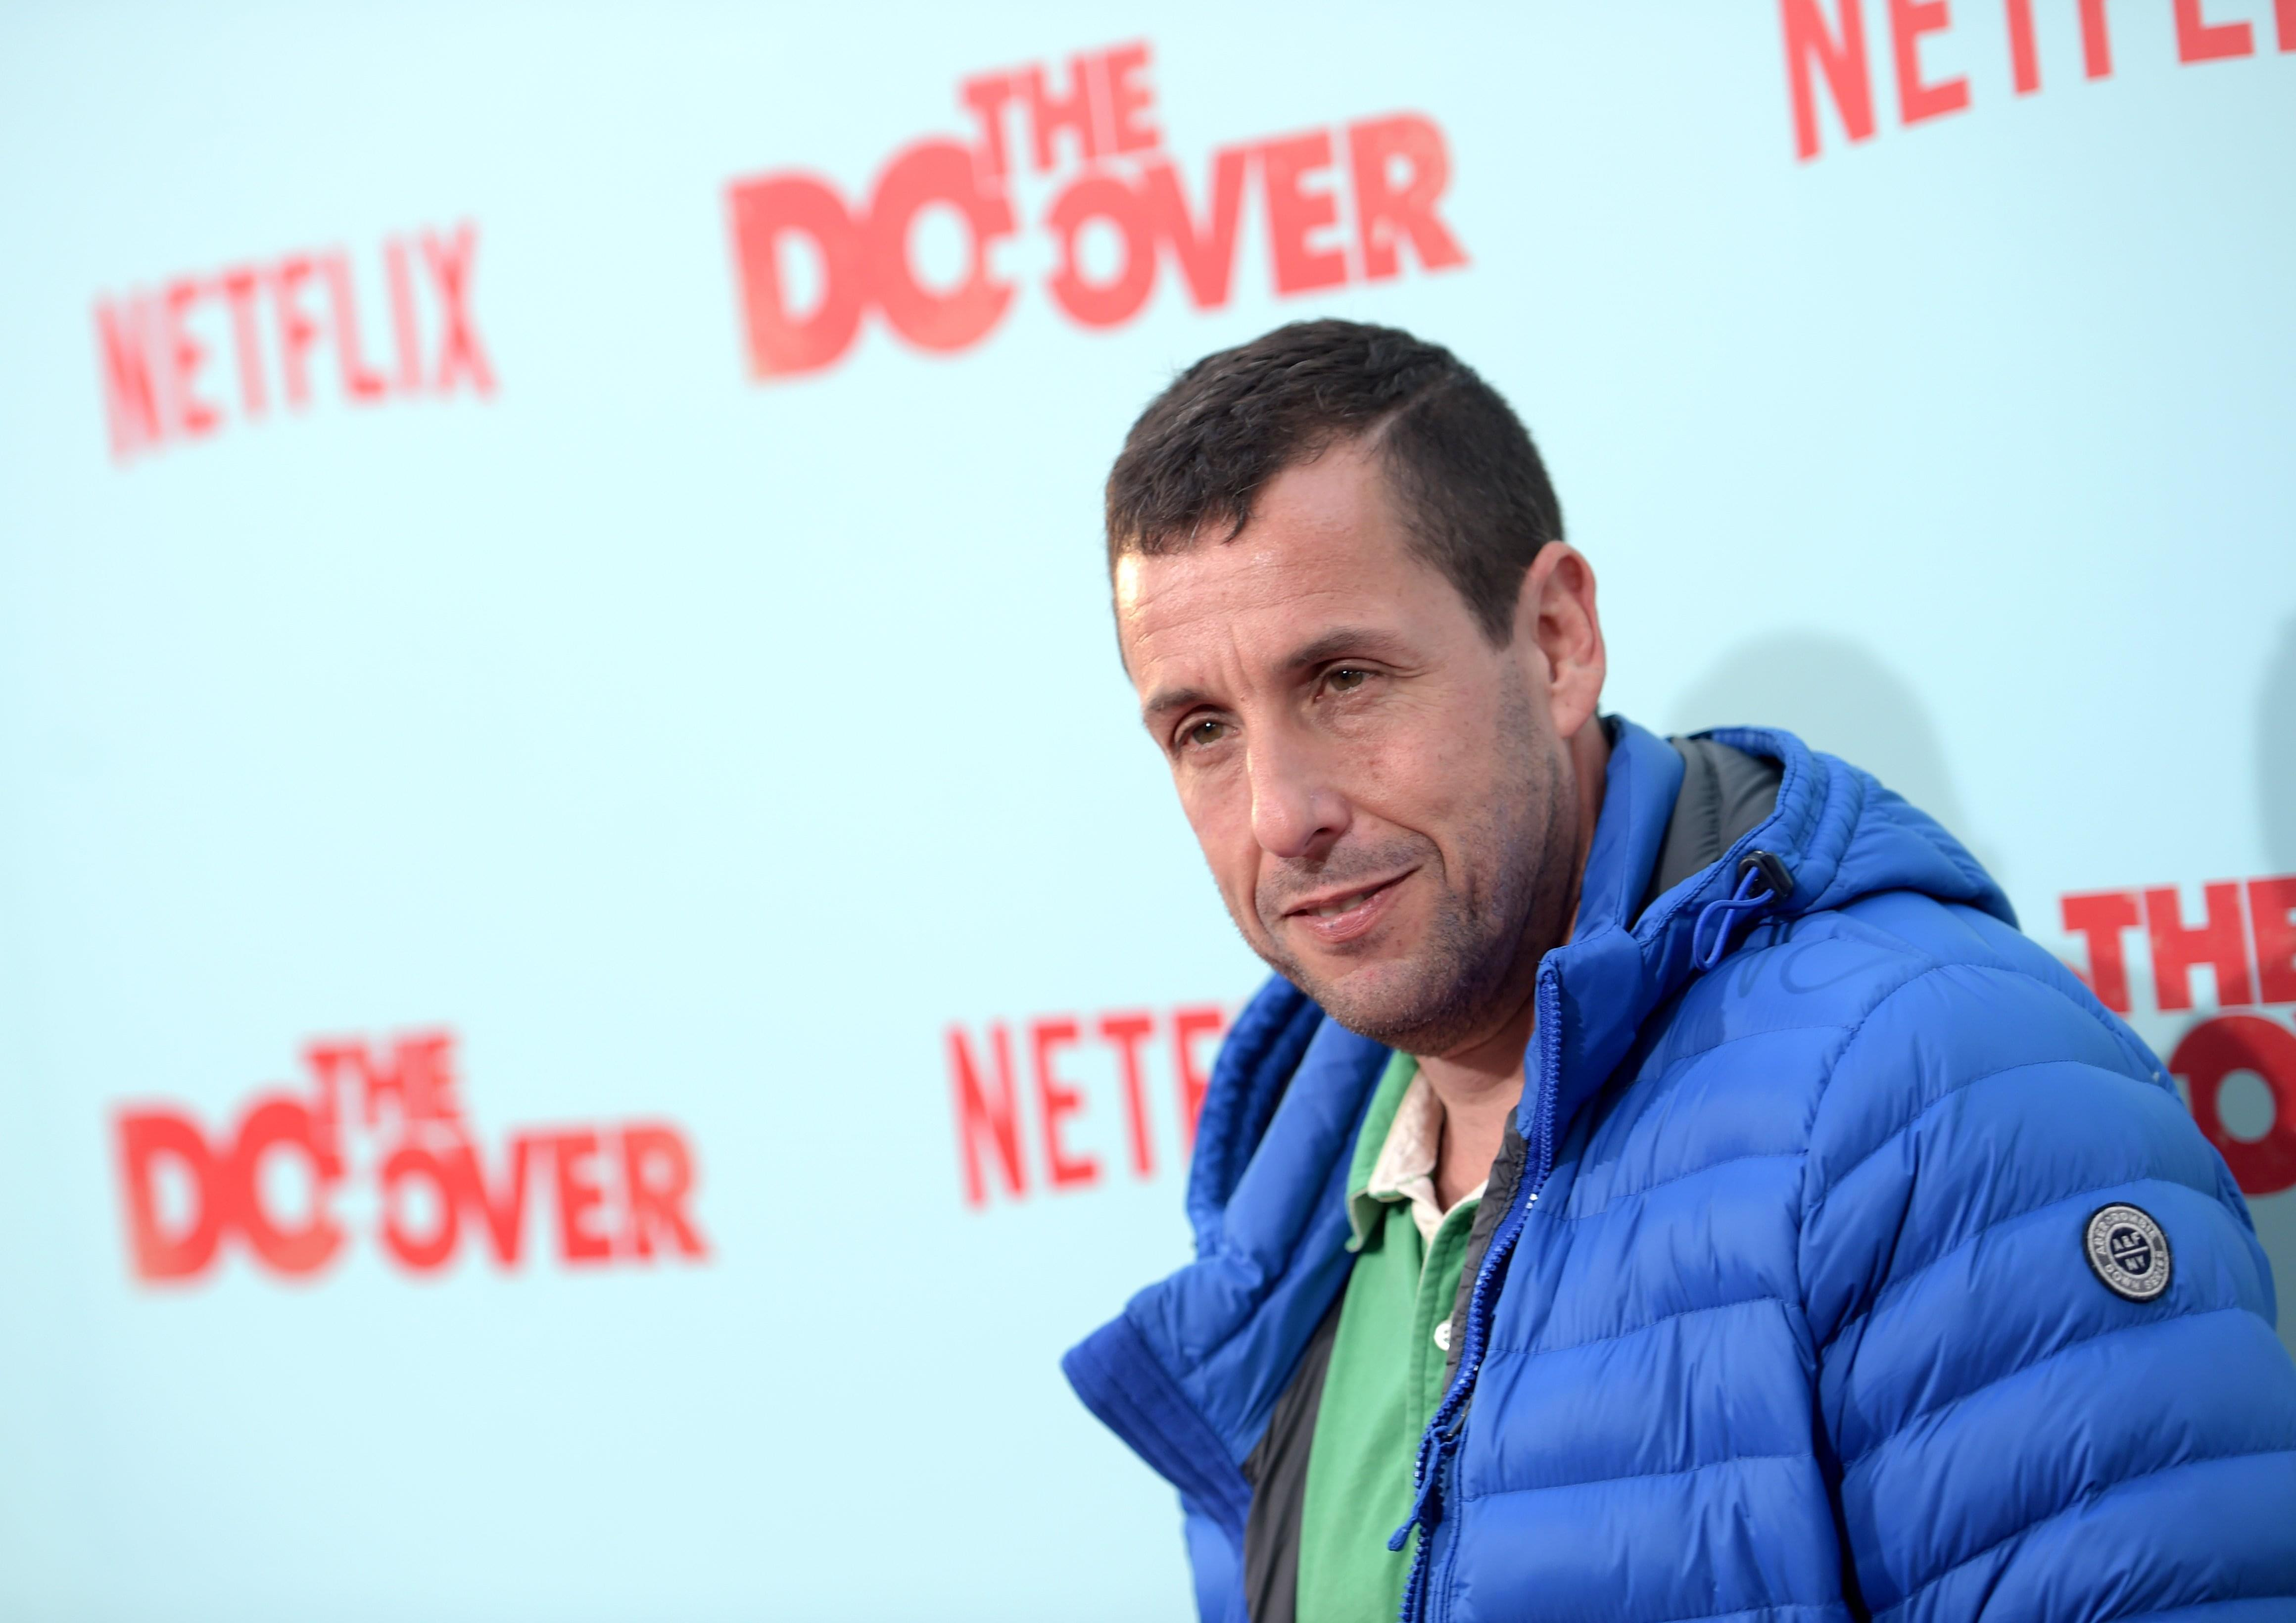 Adam Sandler Hosts Saturday Night Live This Weekend With Musical Guest Shawn Mendes